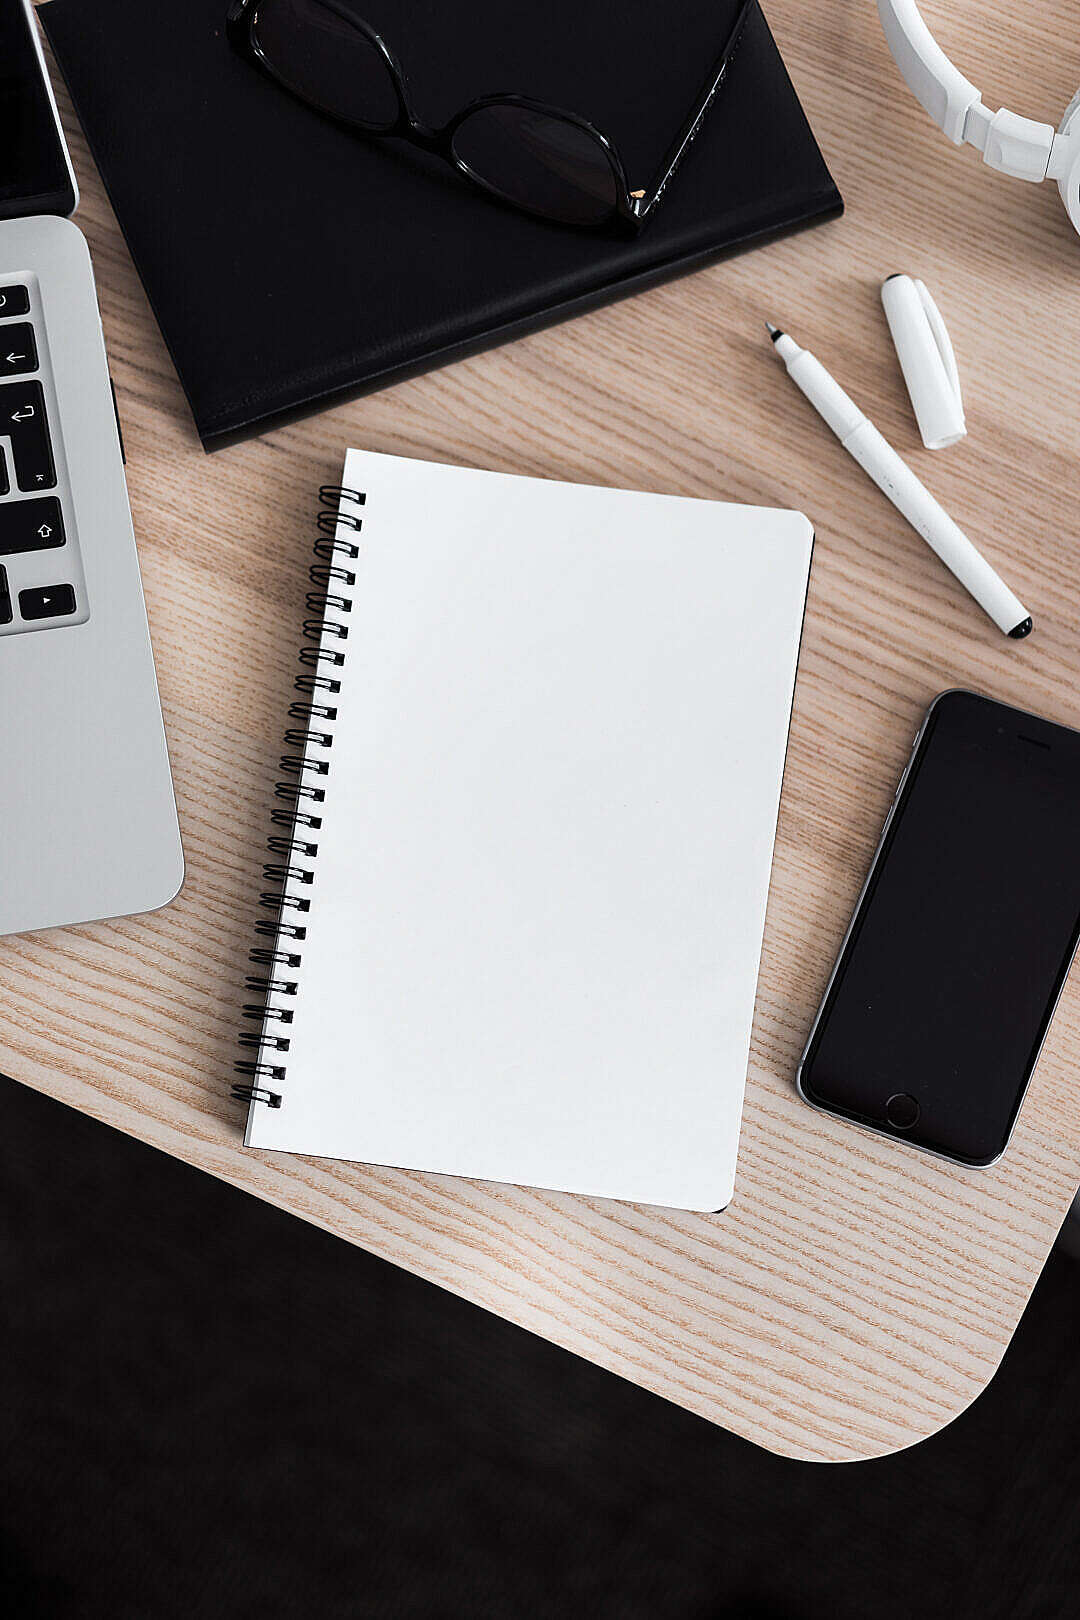 Download Blank Notebook in an Office Space FREE Stock Photo